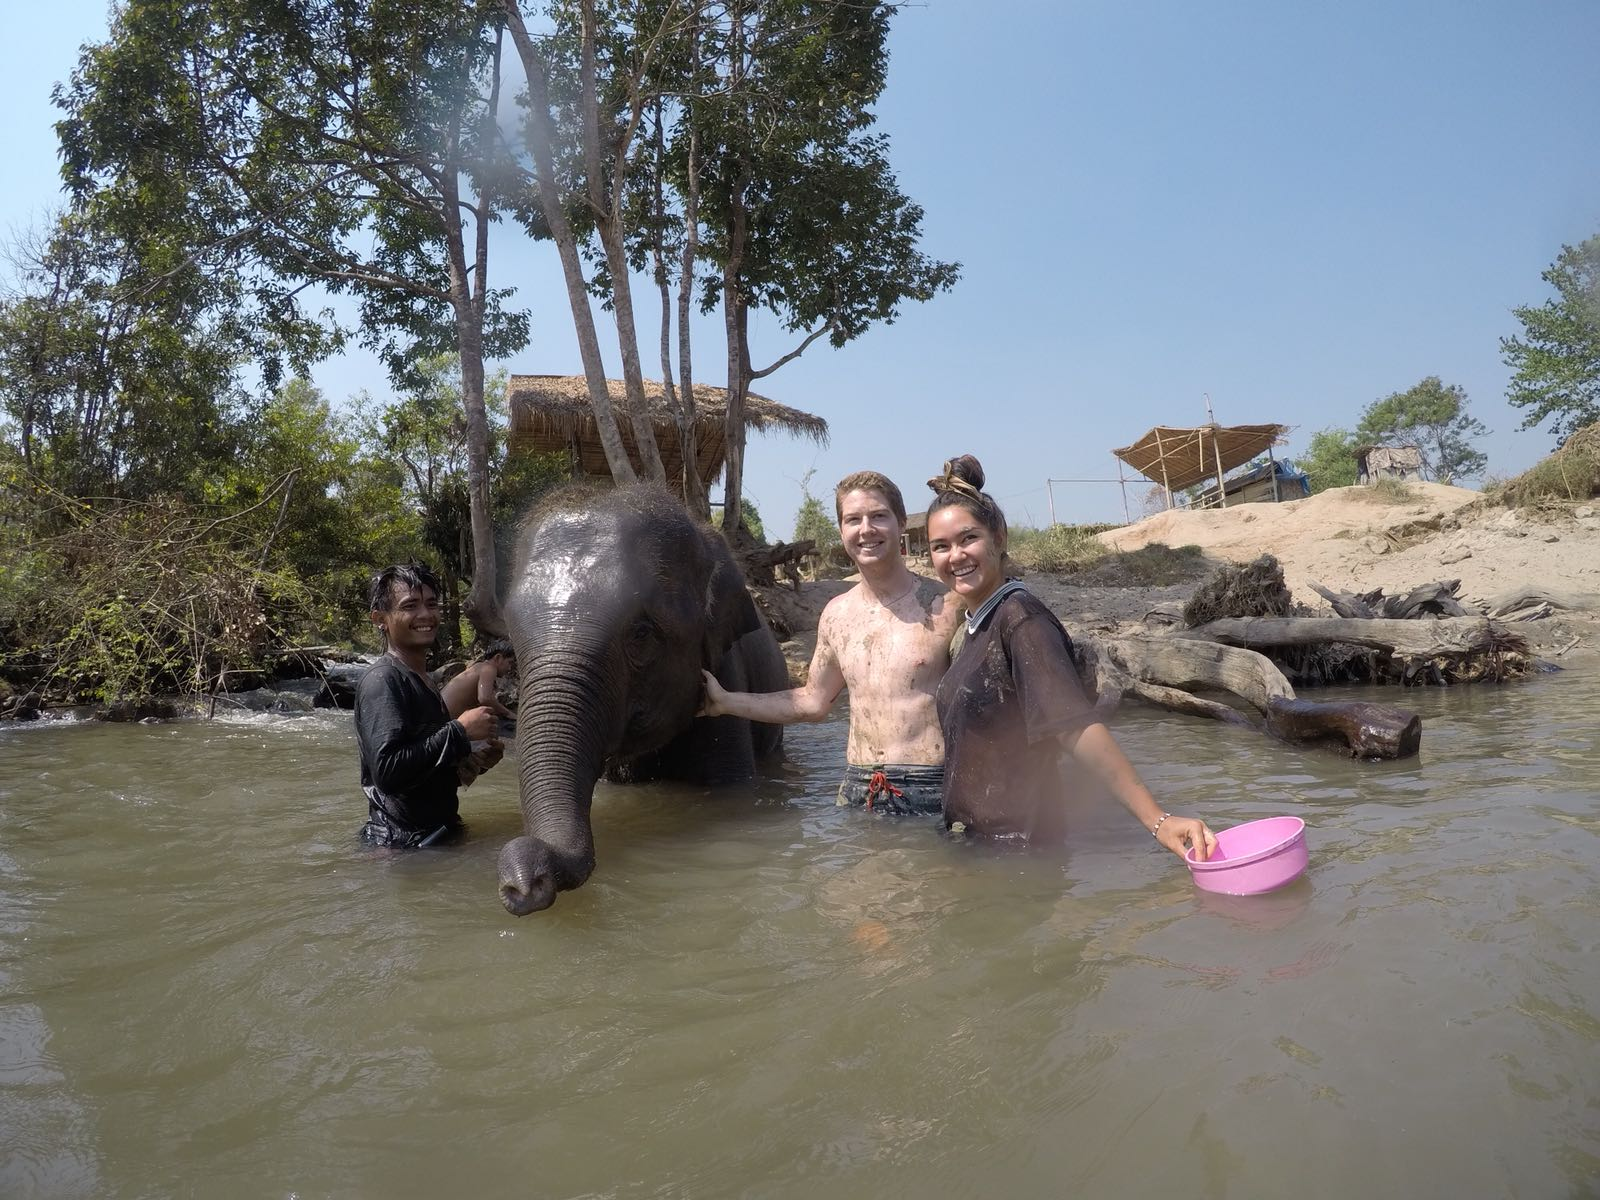 Bath time with the baby Elephant